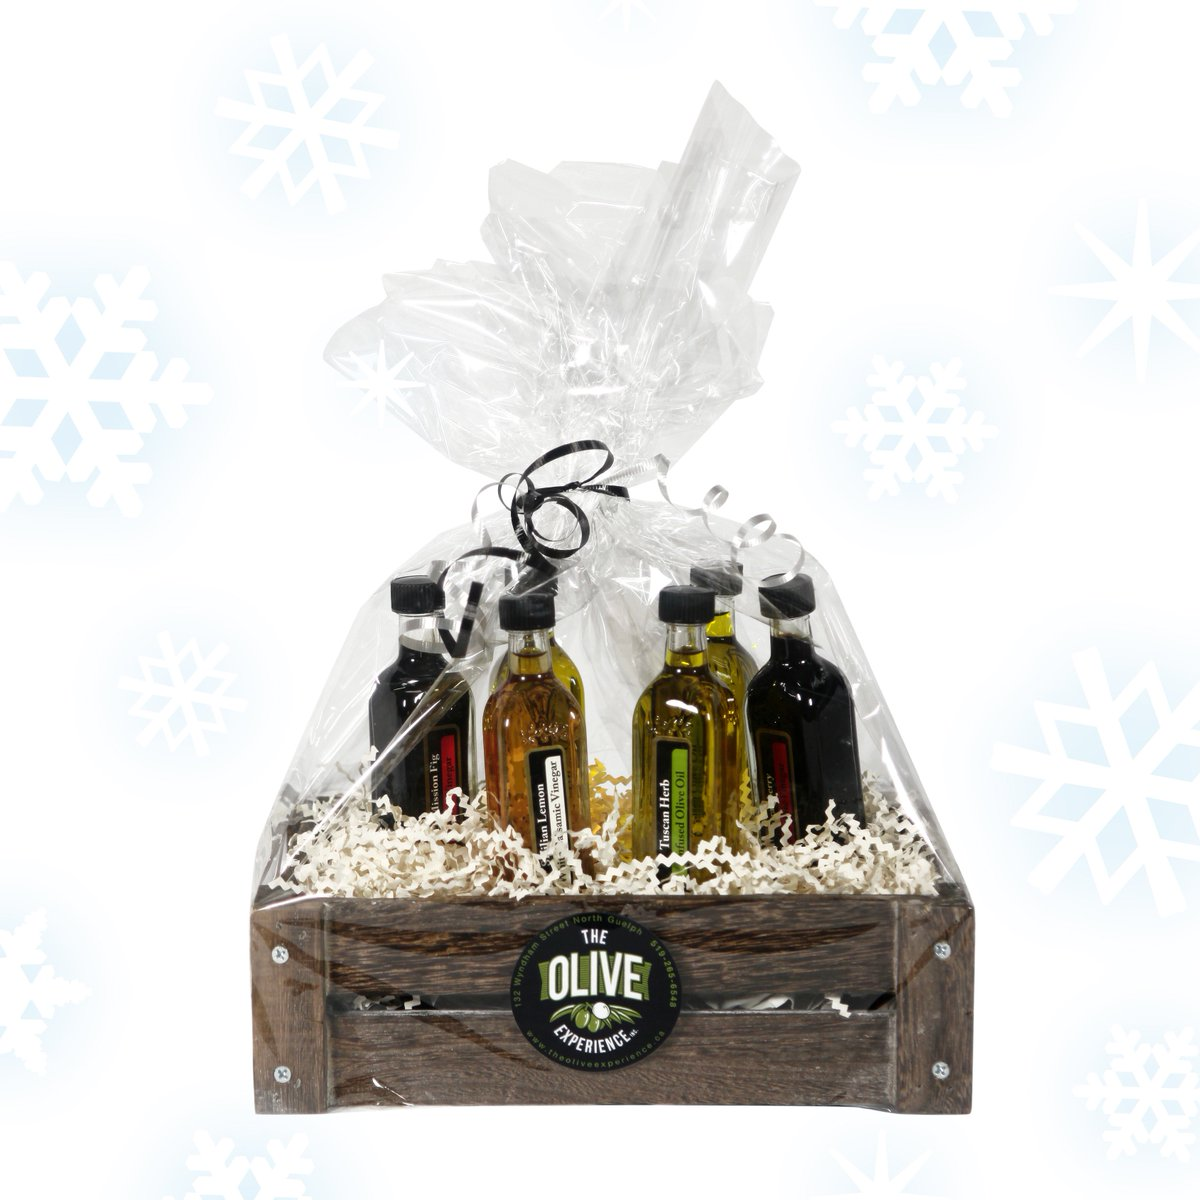 These are a select few of our gift basket options which include 60ml bottle 4-Packs, 6-Packs and our unique Beauty Set!pic.twitter.com/gu08BYePGh